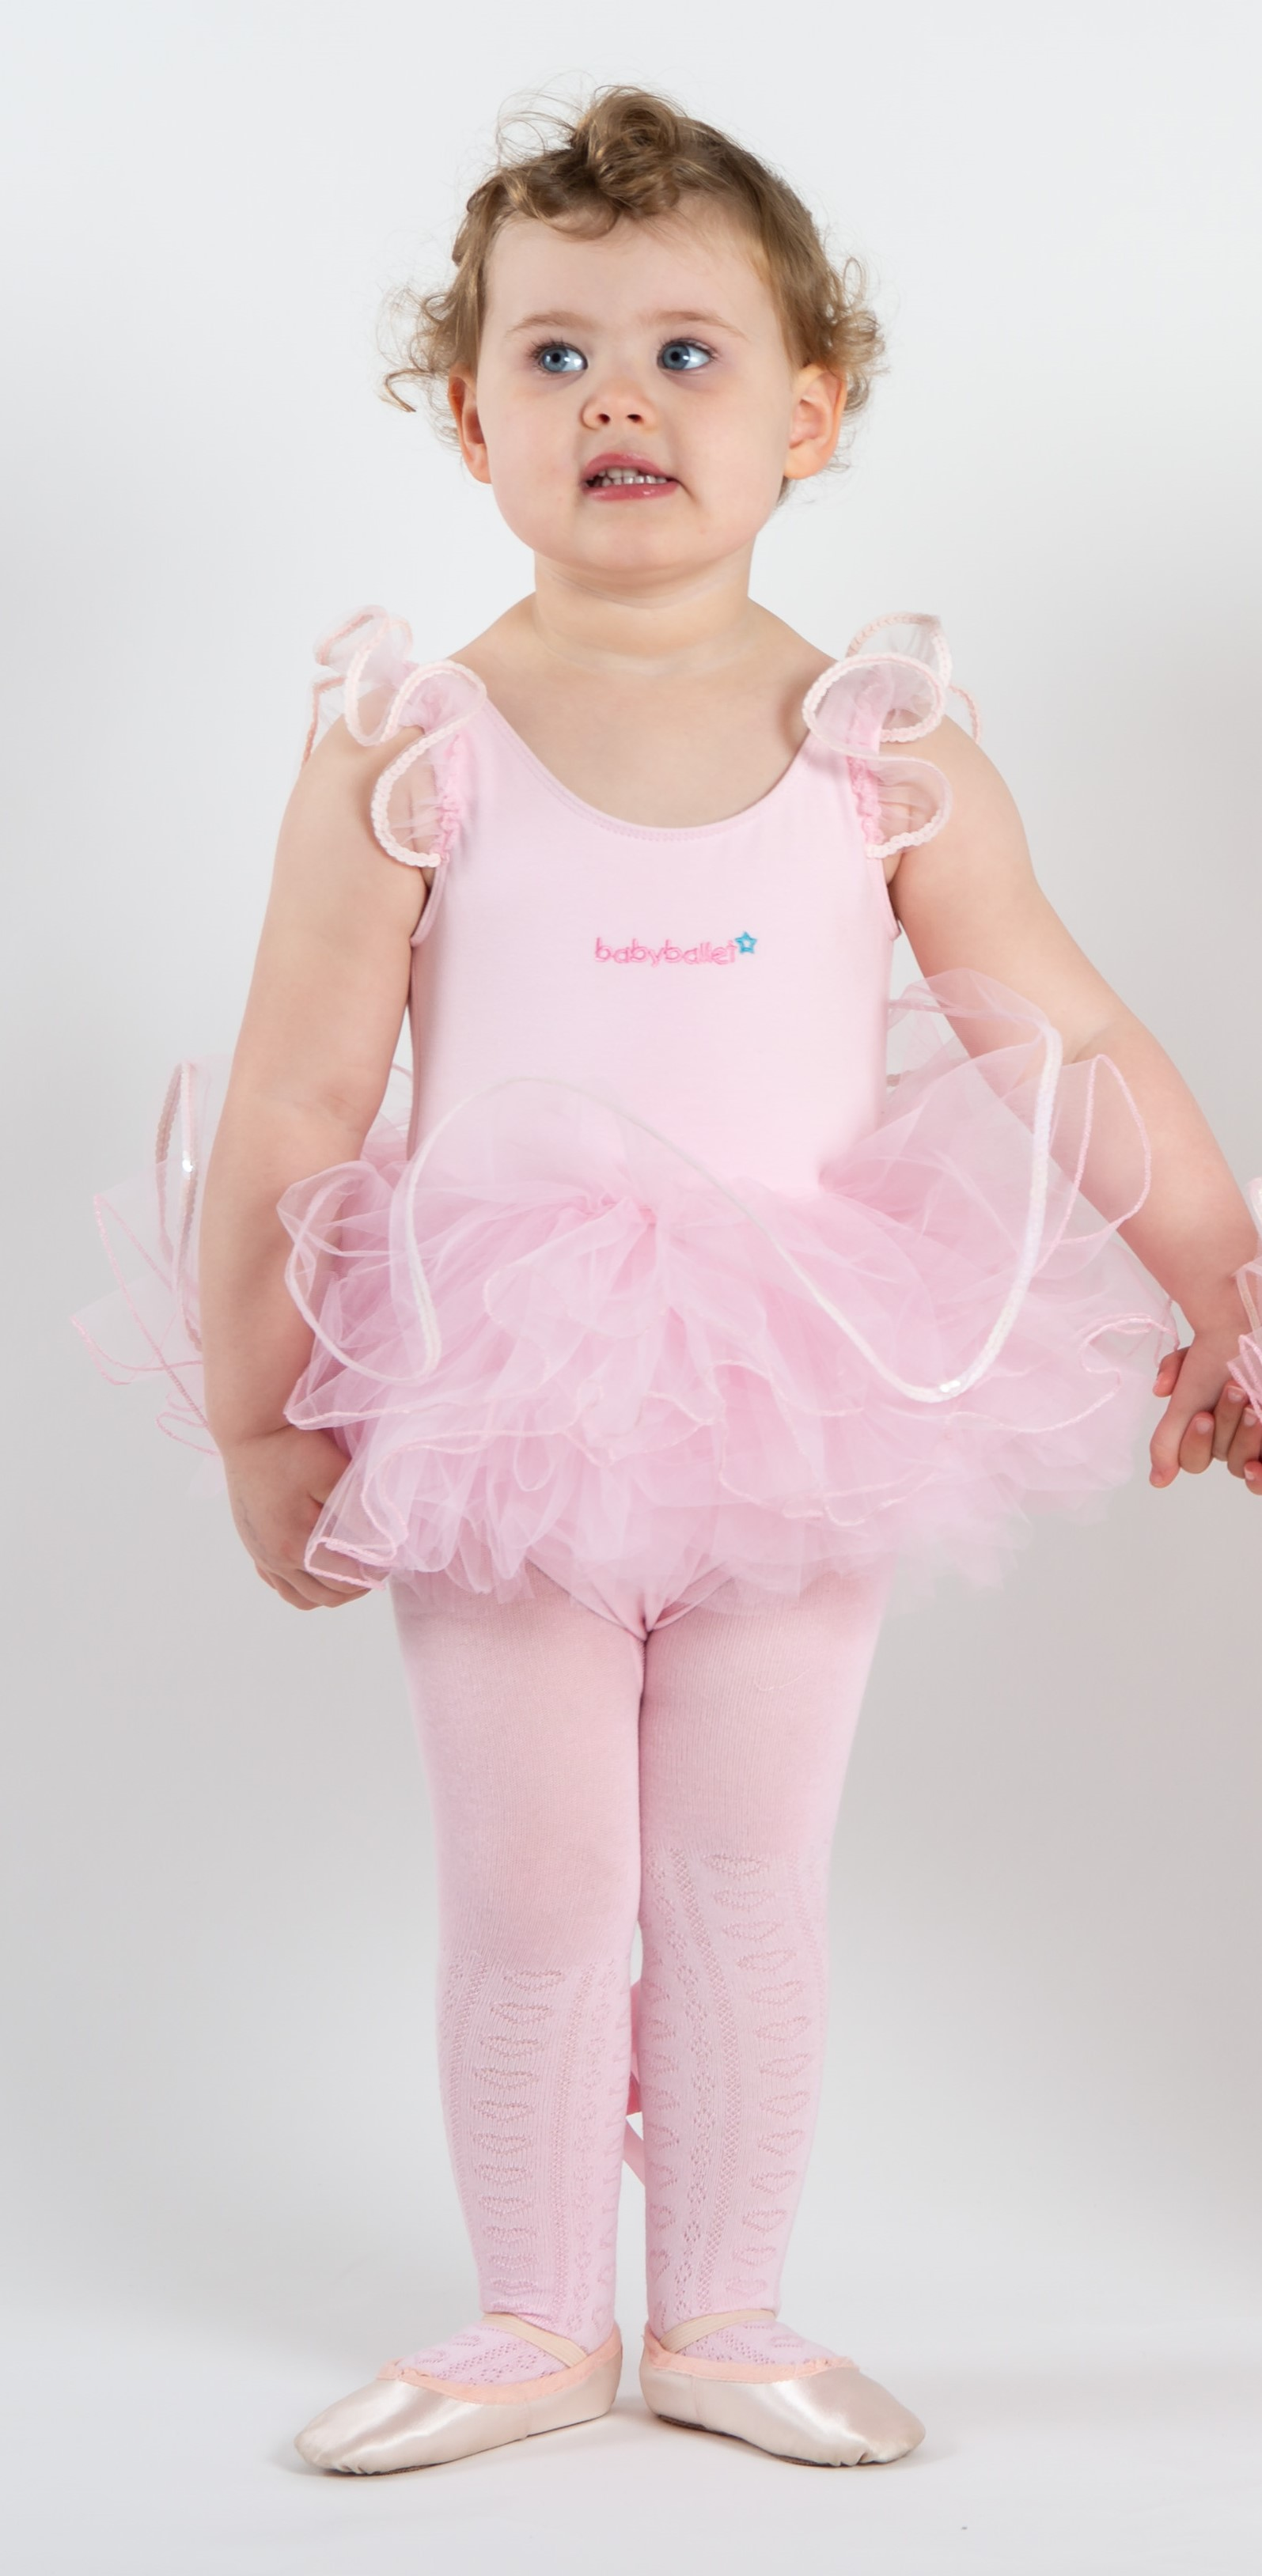 19fbf899eafdb ... bow perfect for baby ballet stars to wear at dance classes · pink  jacquard heart detailed soft cotton tights 2